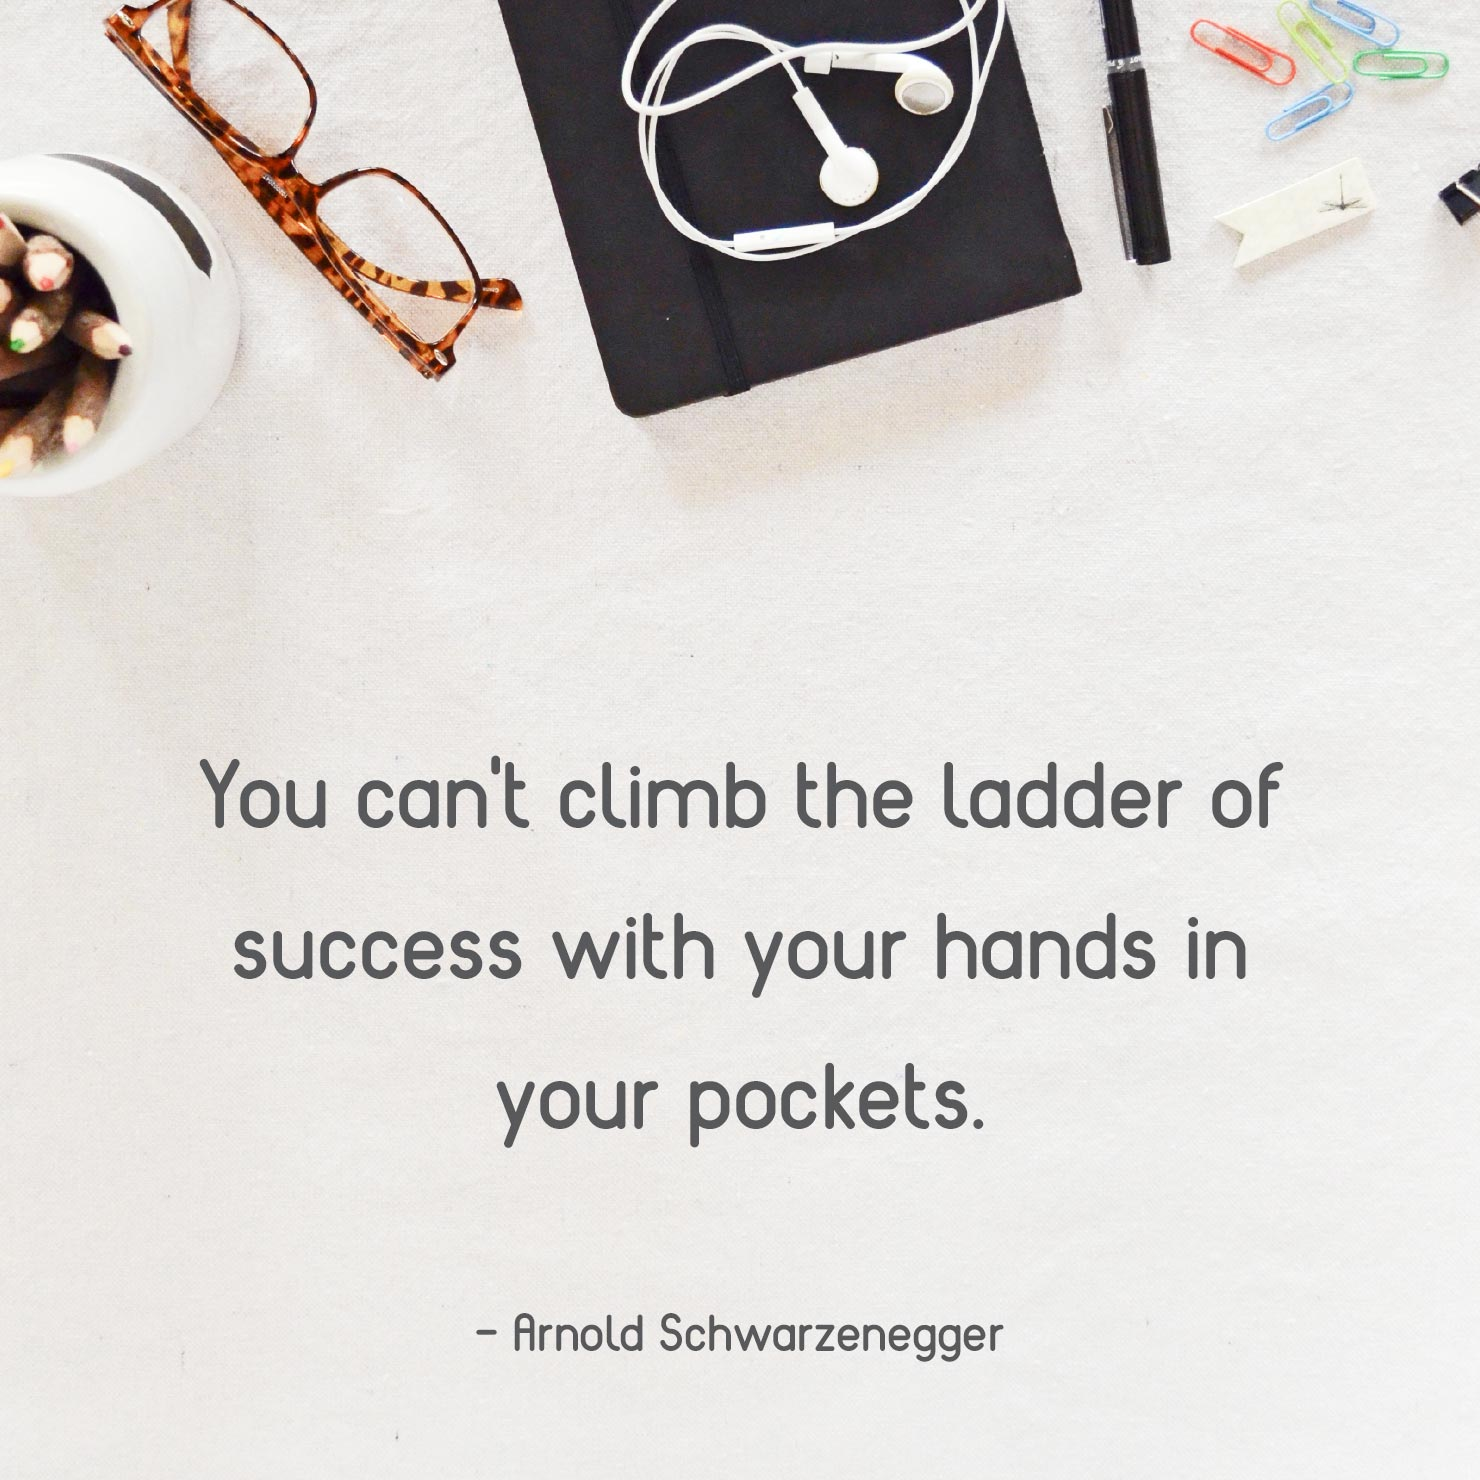 short graduation quote: you can't climb the ladder of success with your hands in your pockets - Arnold Schwarzenegger